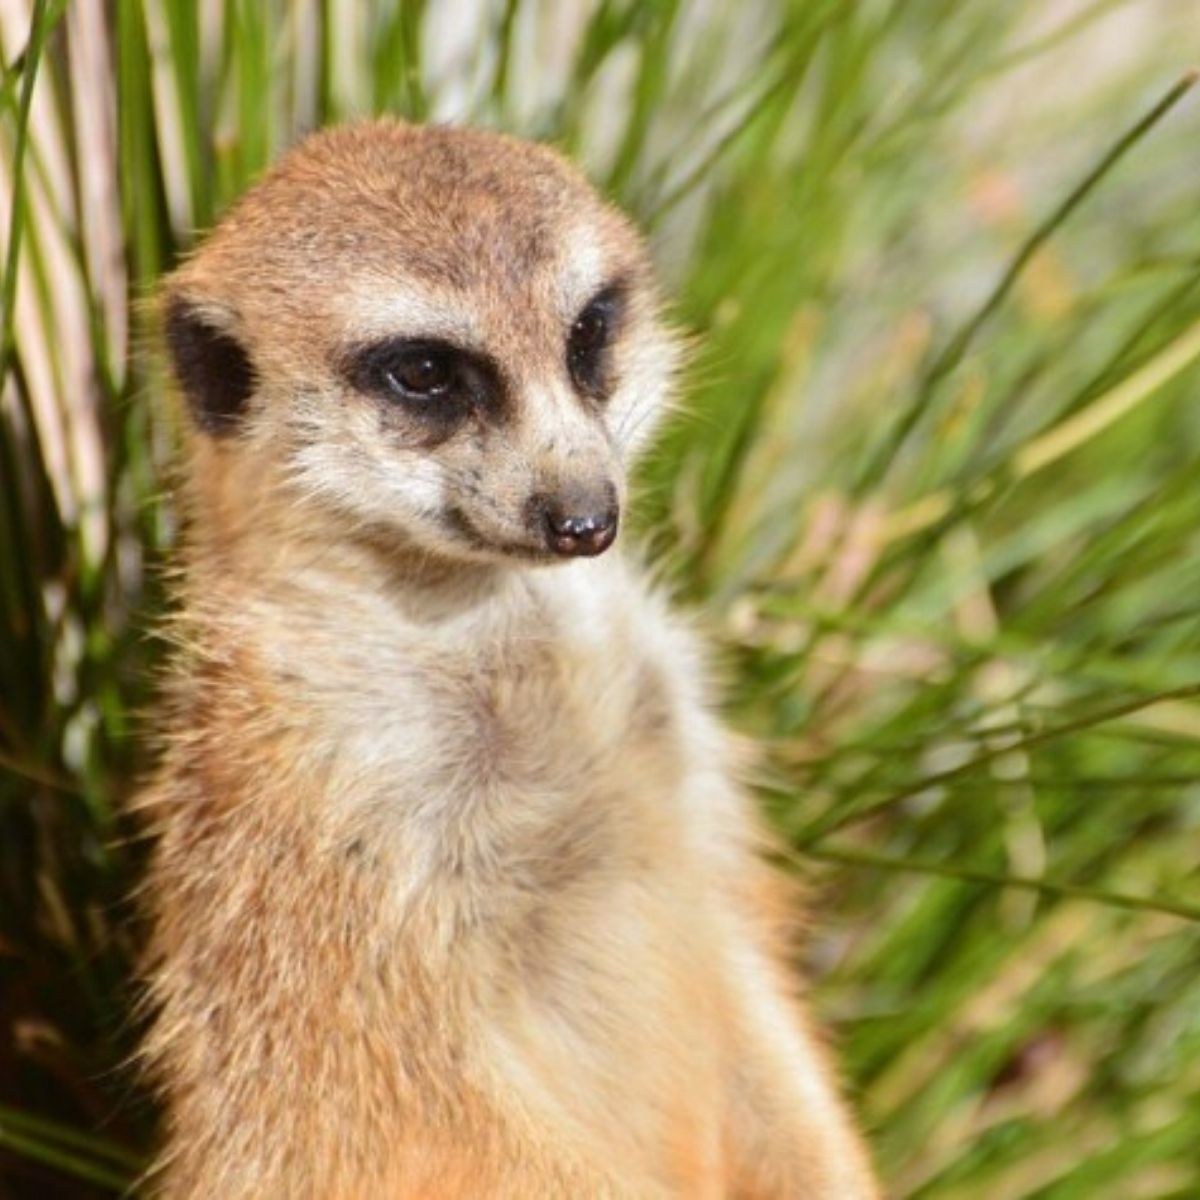 national zoo aquarium meerkat animal canberra capital city australia creatures wildlife short term holiday accommodation budget hotel motel family friendly